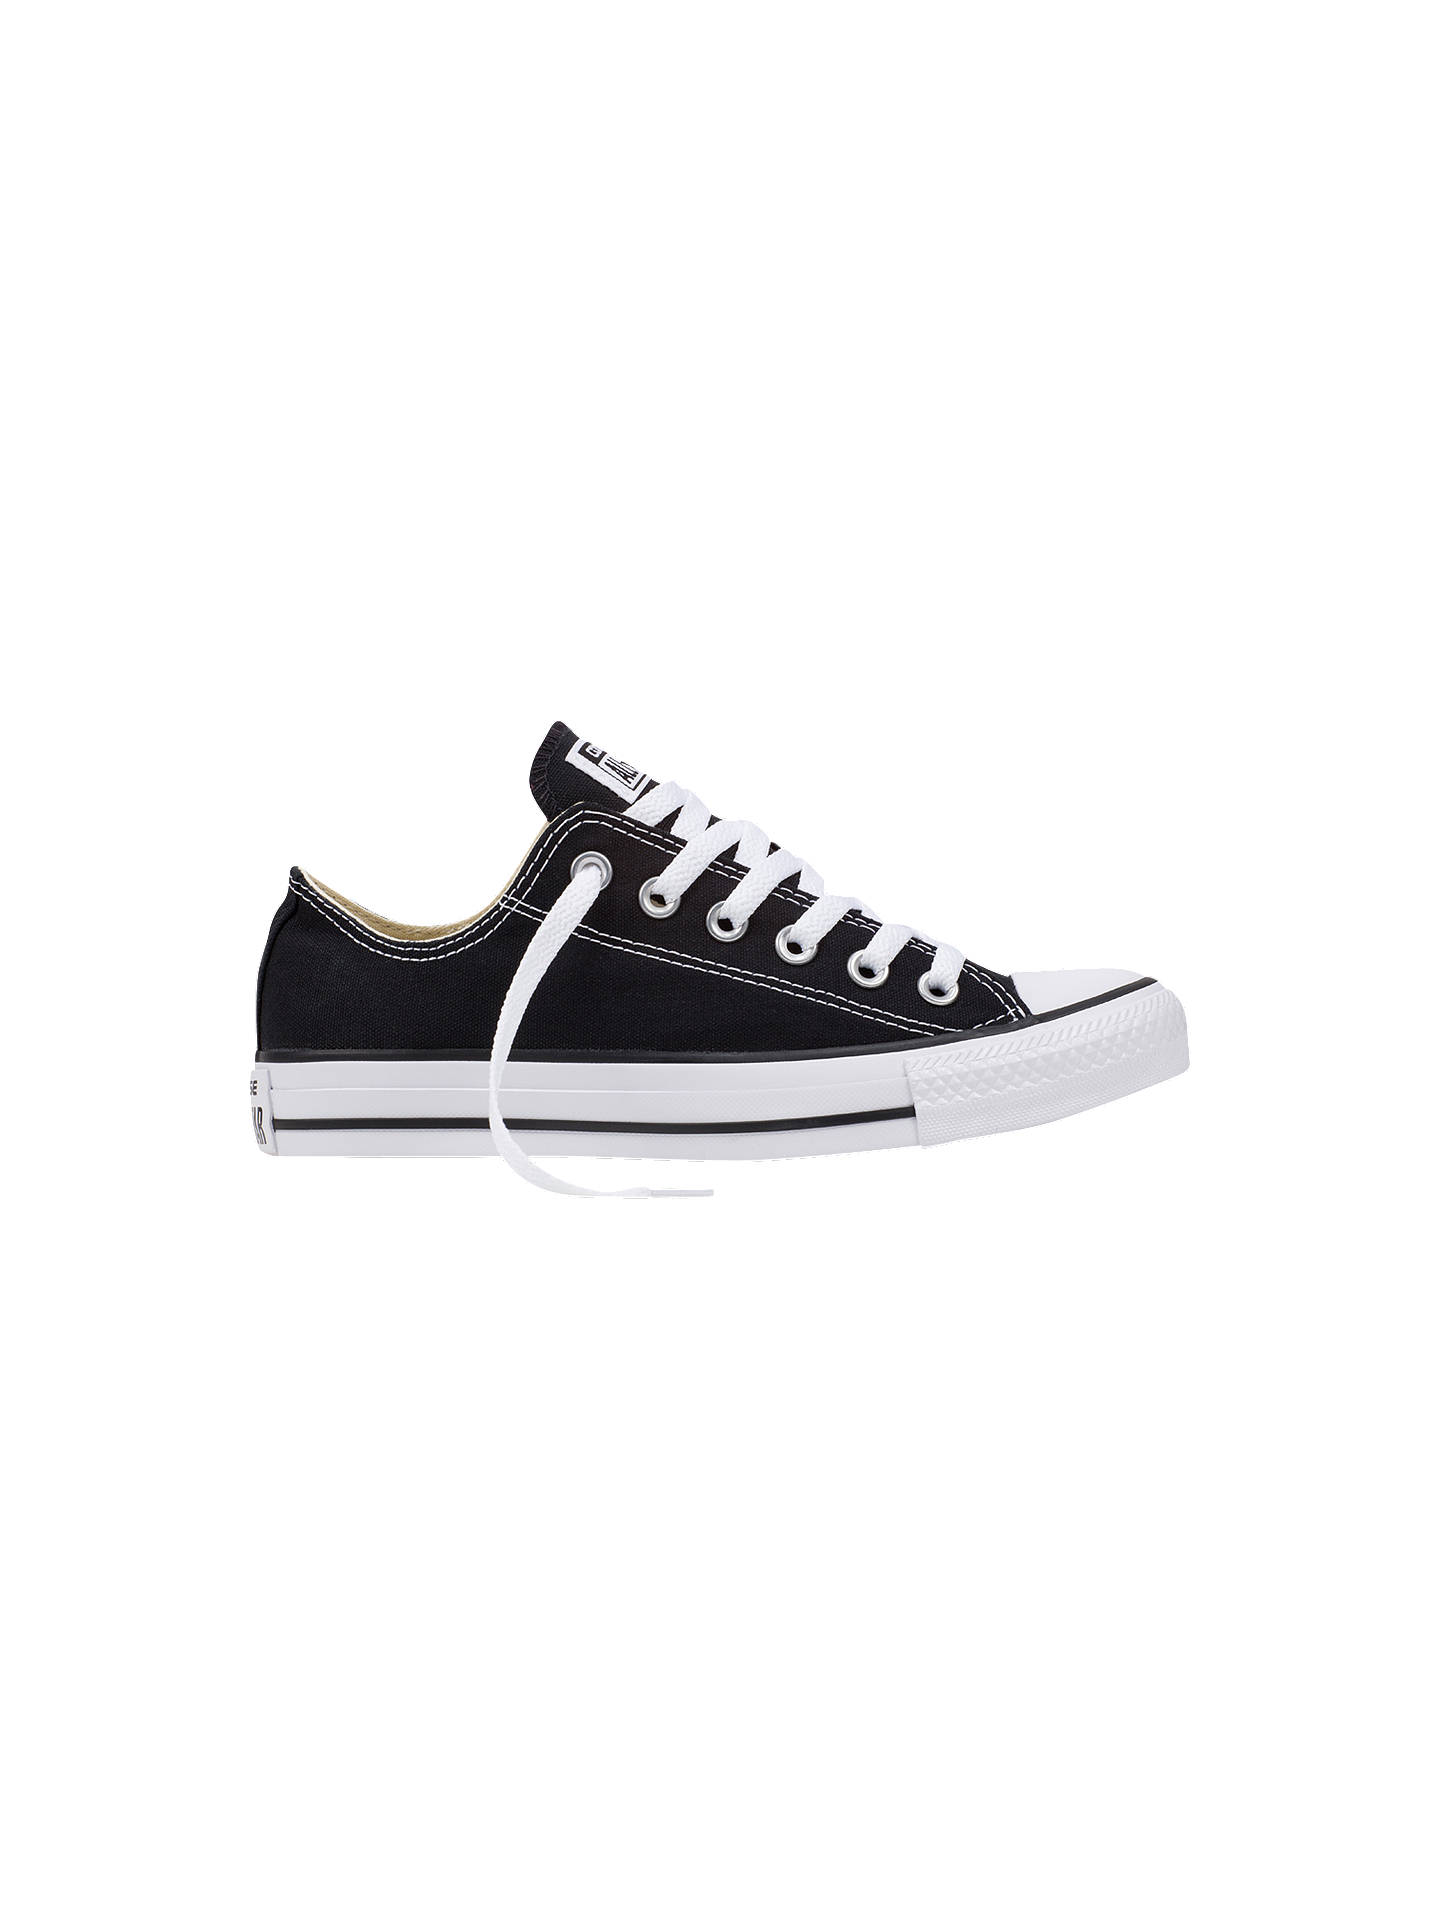 720b56695d2a Converse Chuck Taylor All Star Ox Trainers at John Lewis   Partners